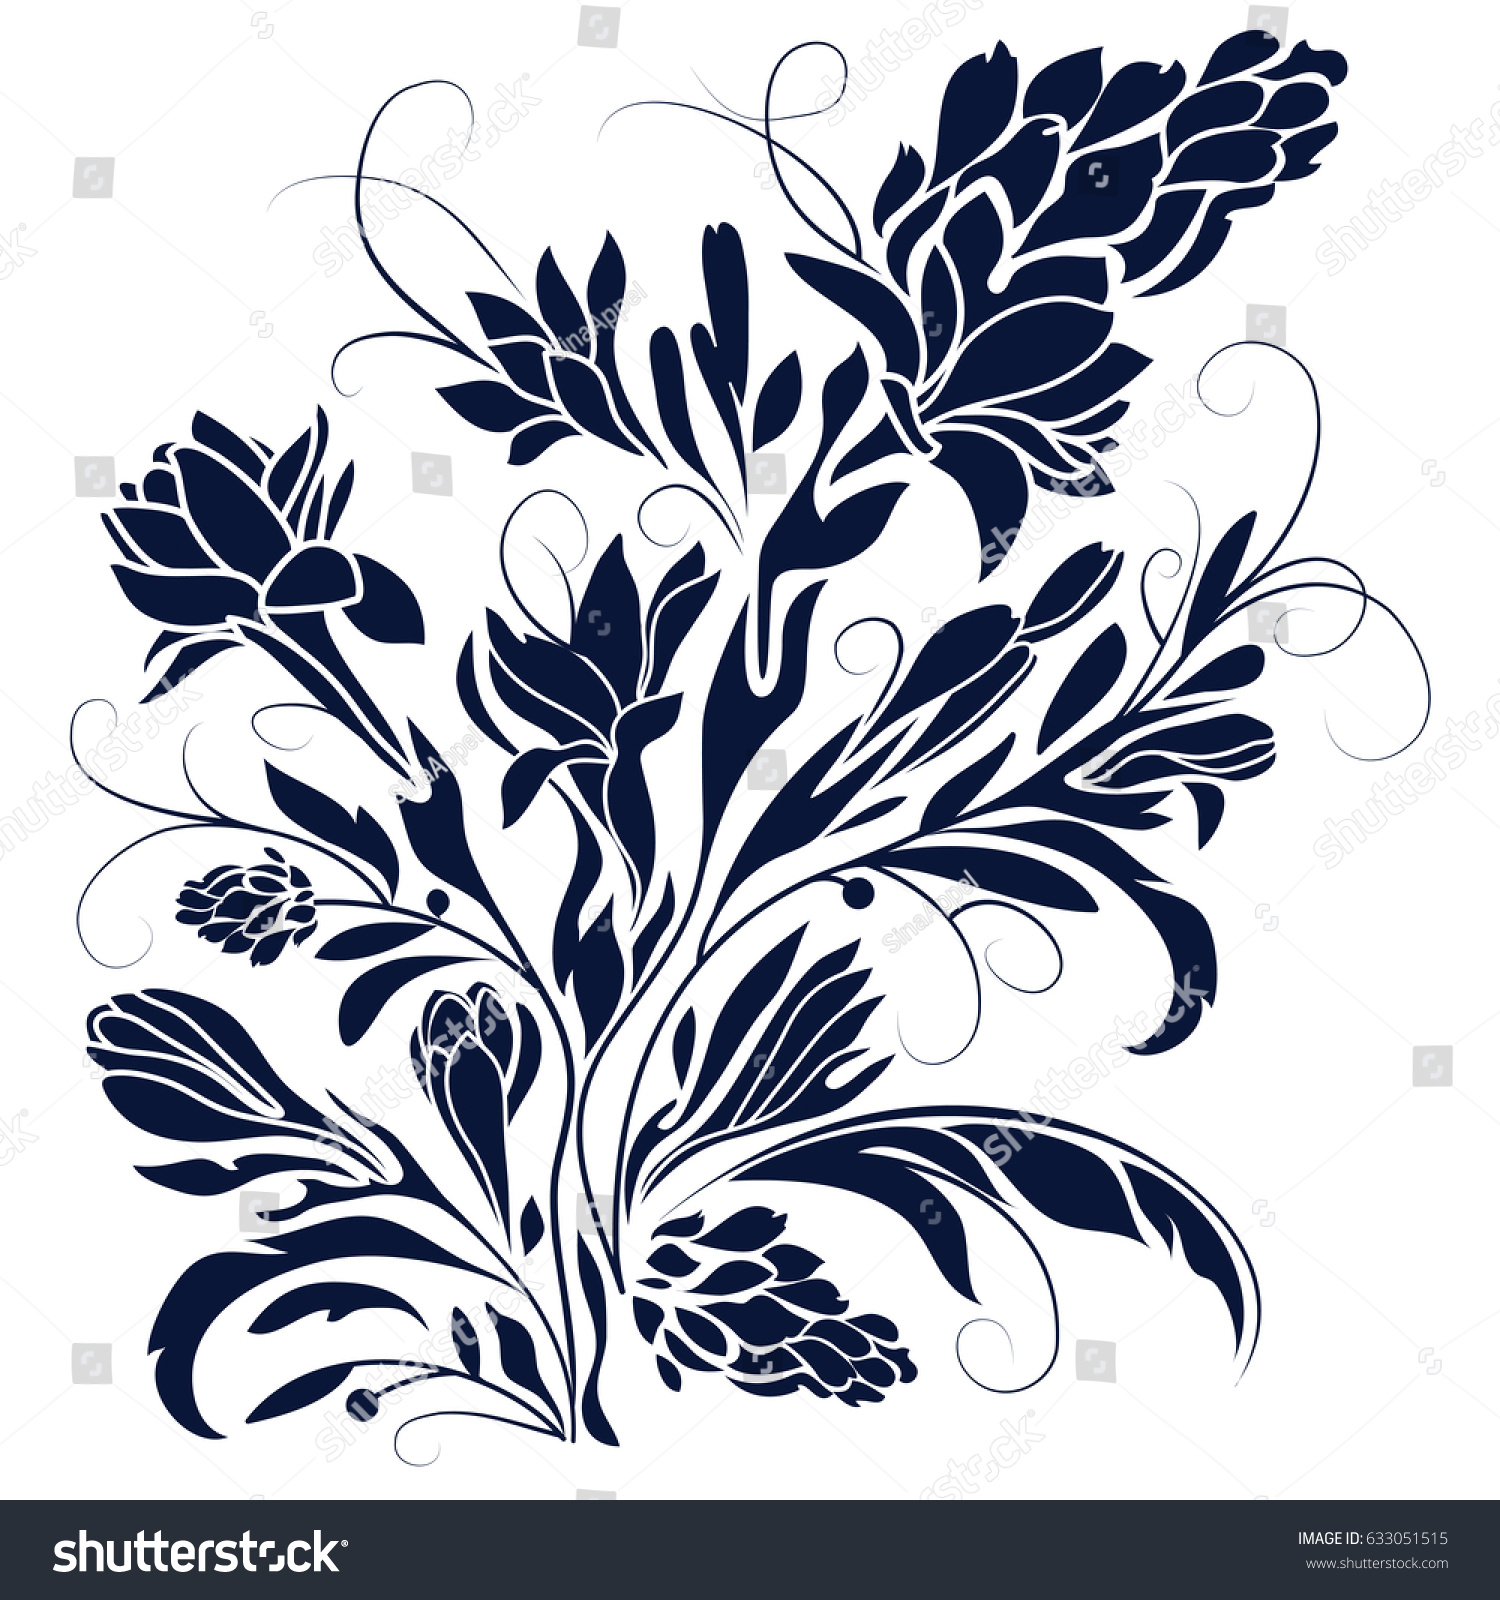 Black Flowers Silhouette On White Background Stock Vector Royalty